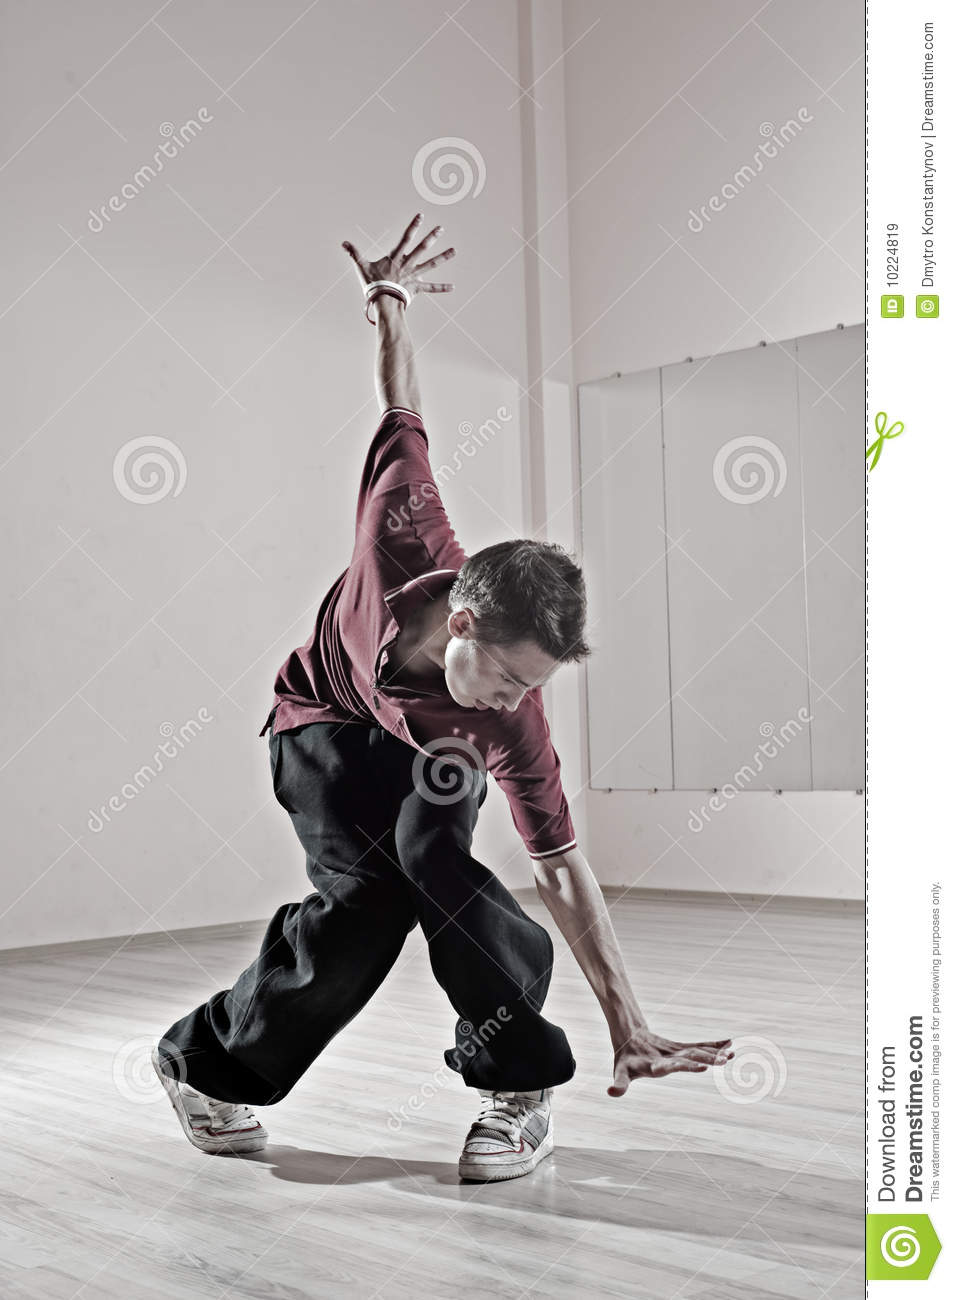 Can suggest Free photo gallery dancers